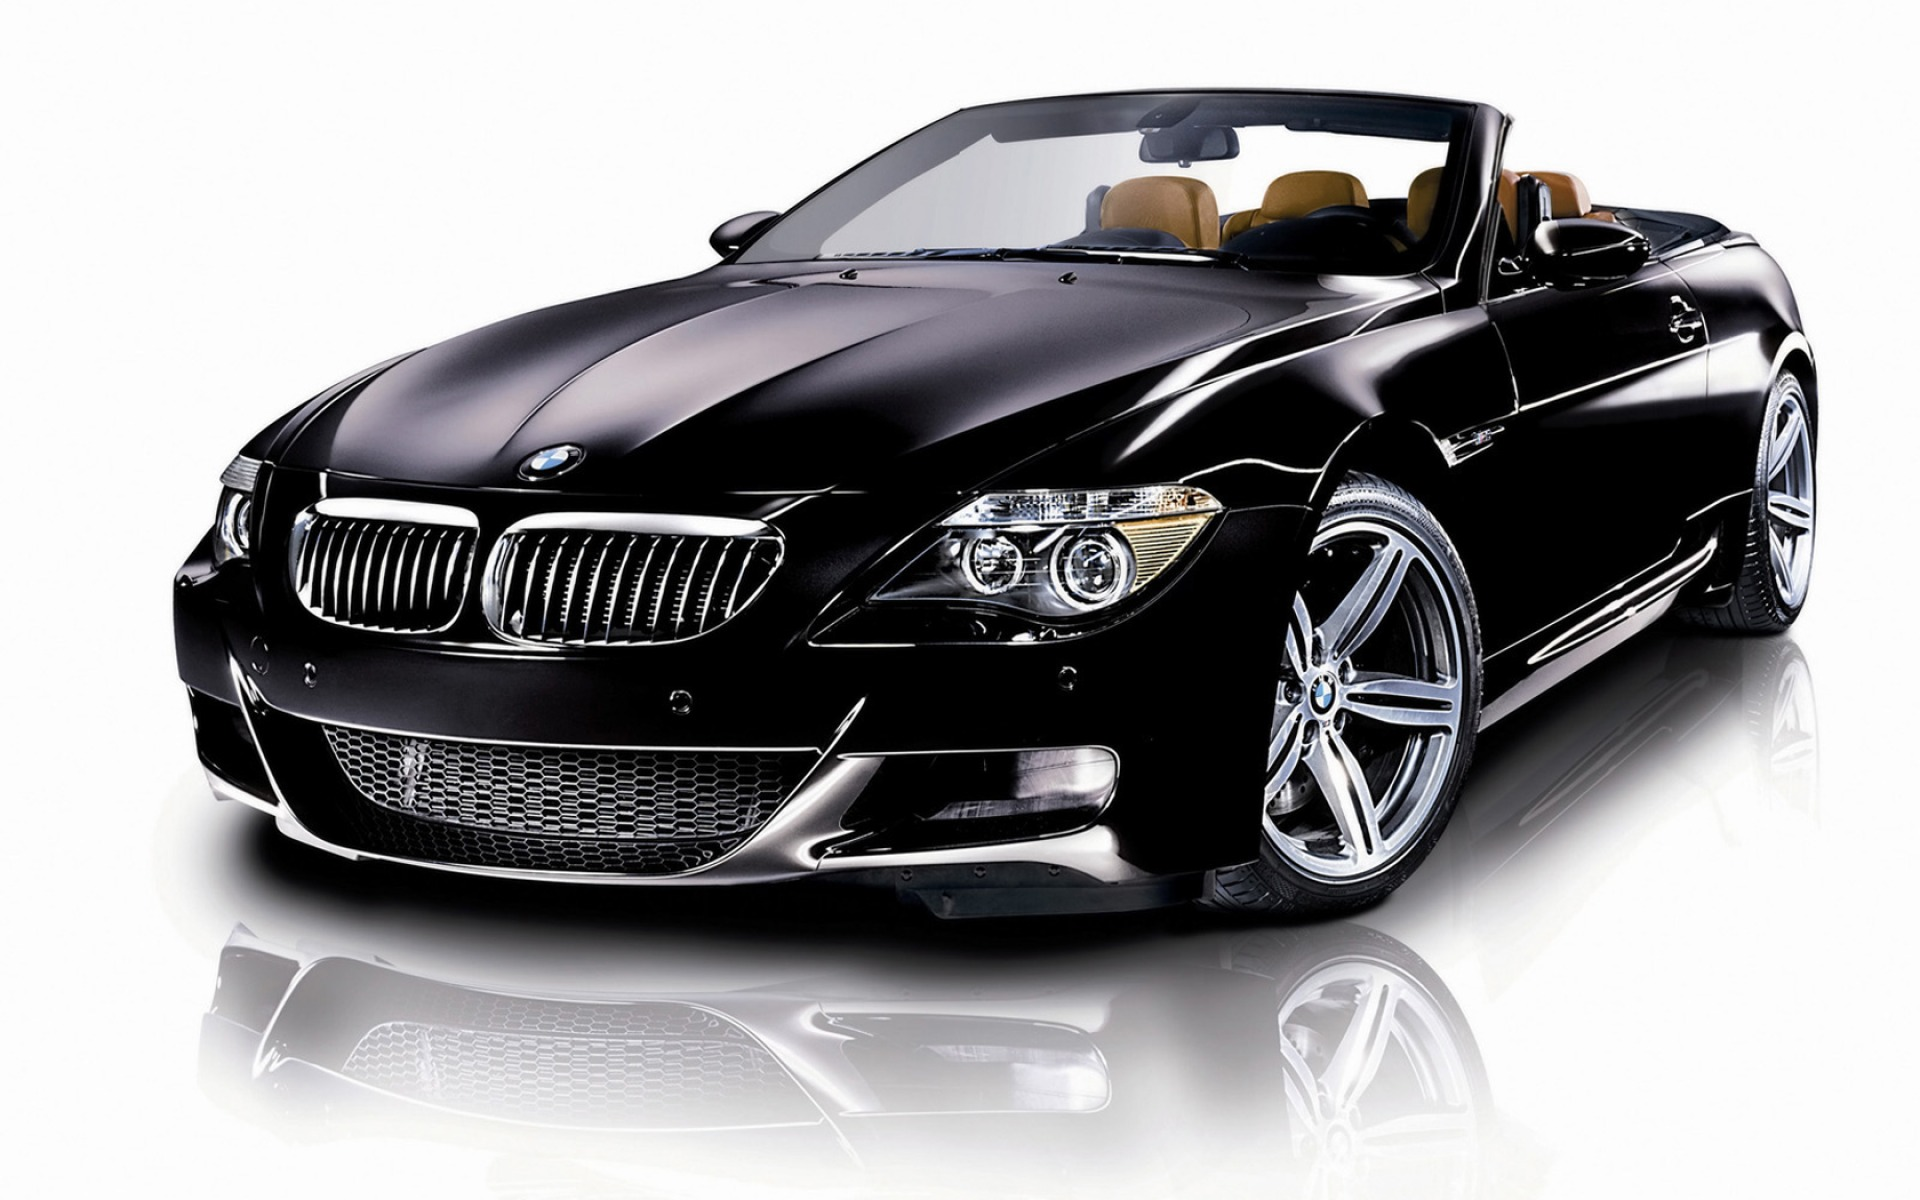 Ultrablogus  Outstanding Bmw Car Wallpaper Wallpapers For Free Download About   With Fascinating Bmw M Convertible Wallpaper Bmw Cars With Astounding  Dodge Intrepid Interior Also  Ford F  Interior In Addition Auto Interior Cleaner And  Vw Beetle Interior As Well As  Chevy Colorado Interior Additionally Jeep Wrangler Interior Back Seat From Allfreedownloadcom With Ultrablogus  Fascinating Bmw Car Wallpaper Wallpapers For Free Download About   With Astounding Bmw M Convertible Wallpaper Bmw Cars And Outstanding  Dodge Intrepid Interior Also  Ford F  Interior In Addition Auto Interior Cleaner From Allfreedownloadcom